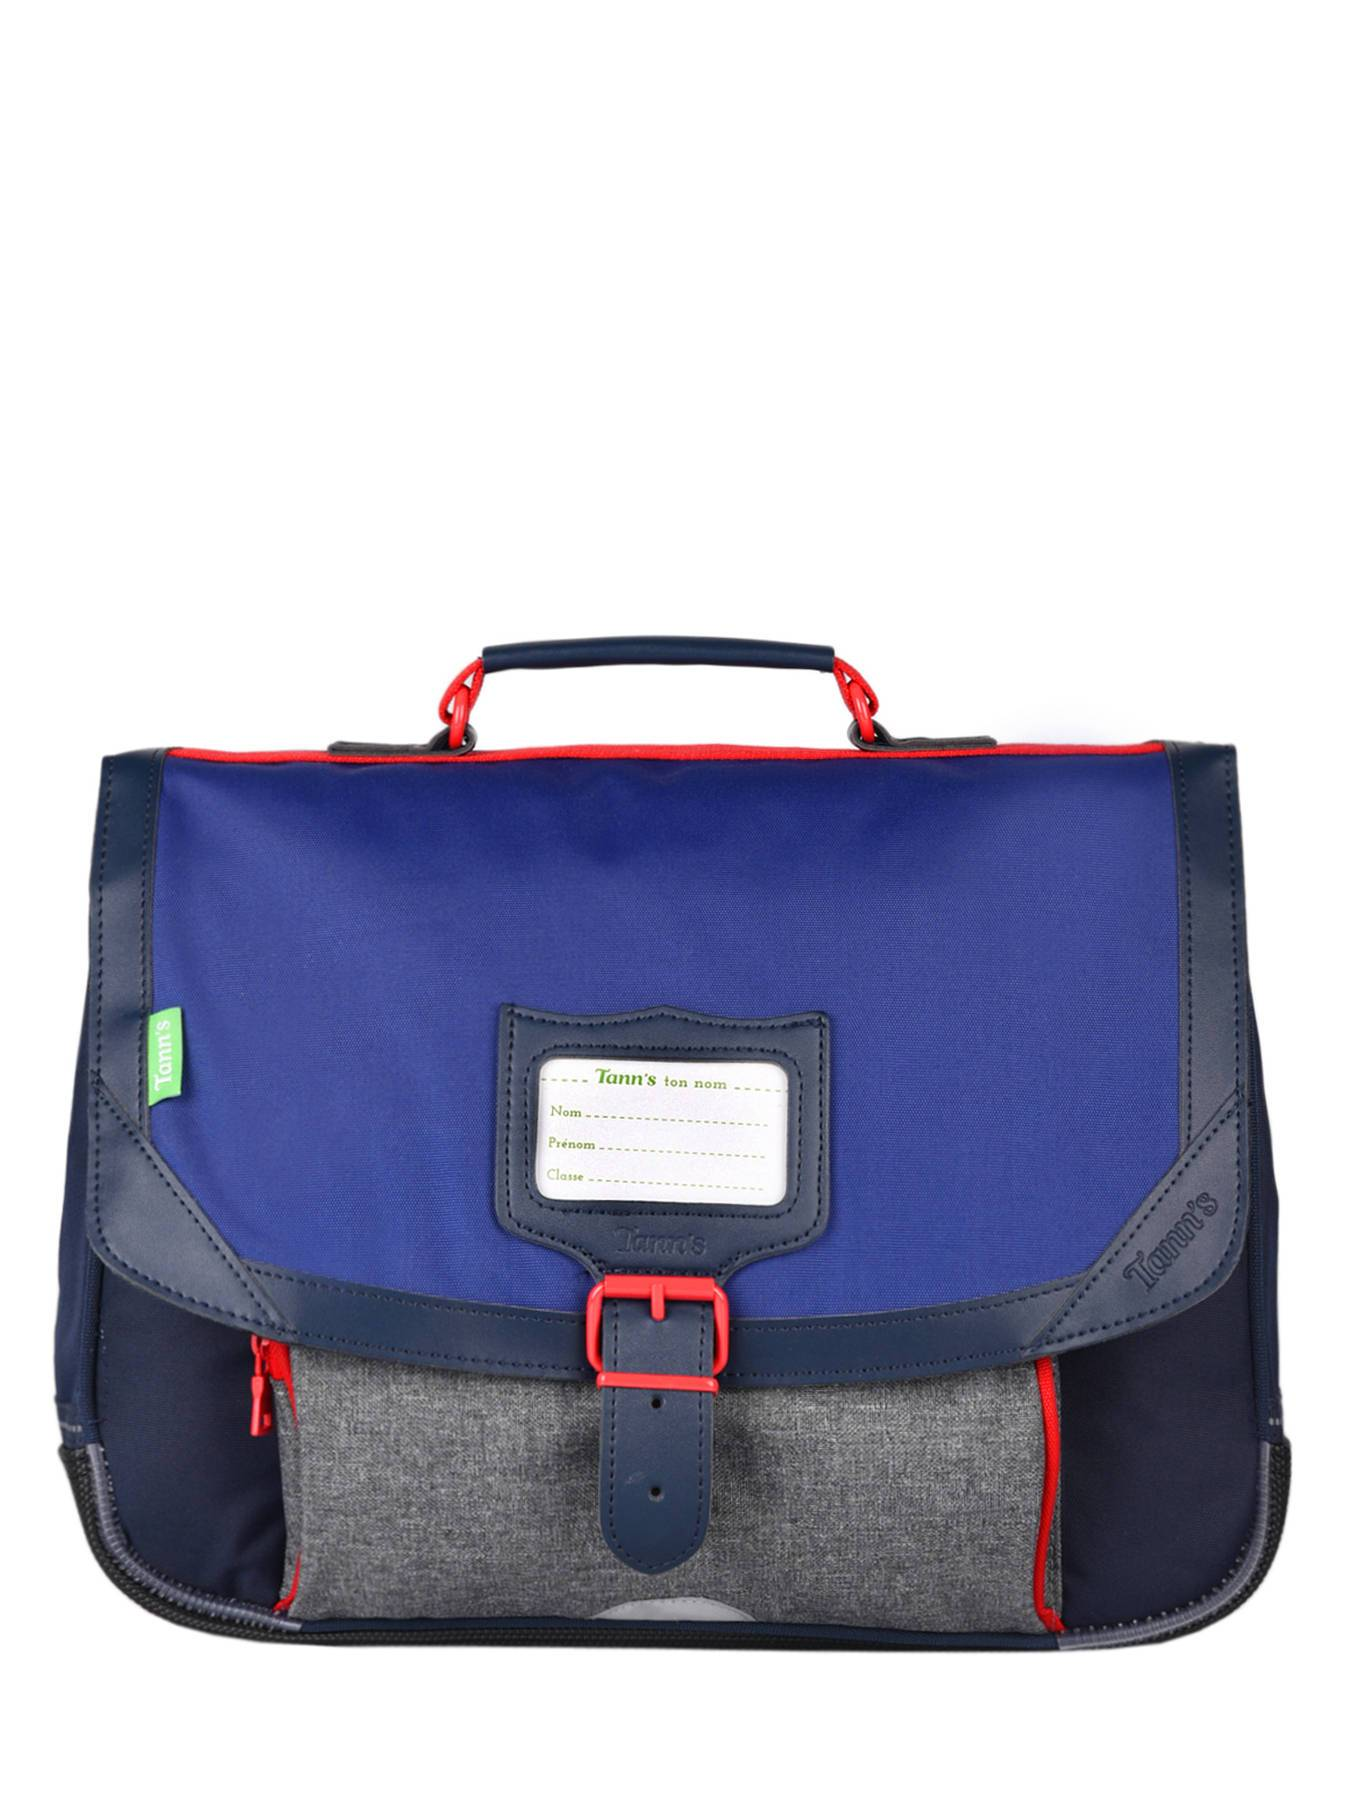 TANN'S Cartable 1 Compartiment Tann's Bleu